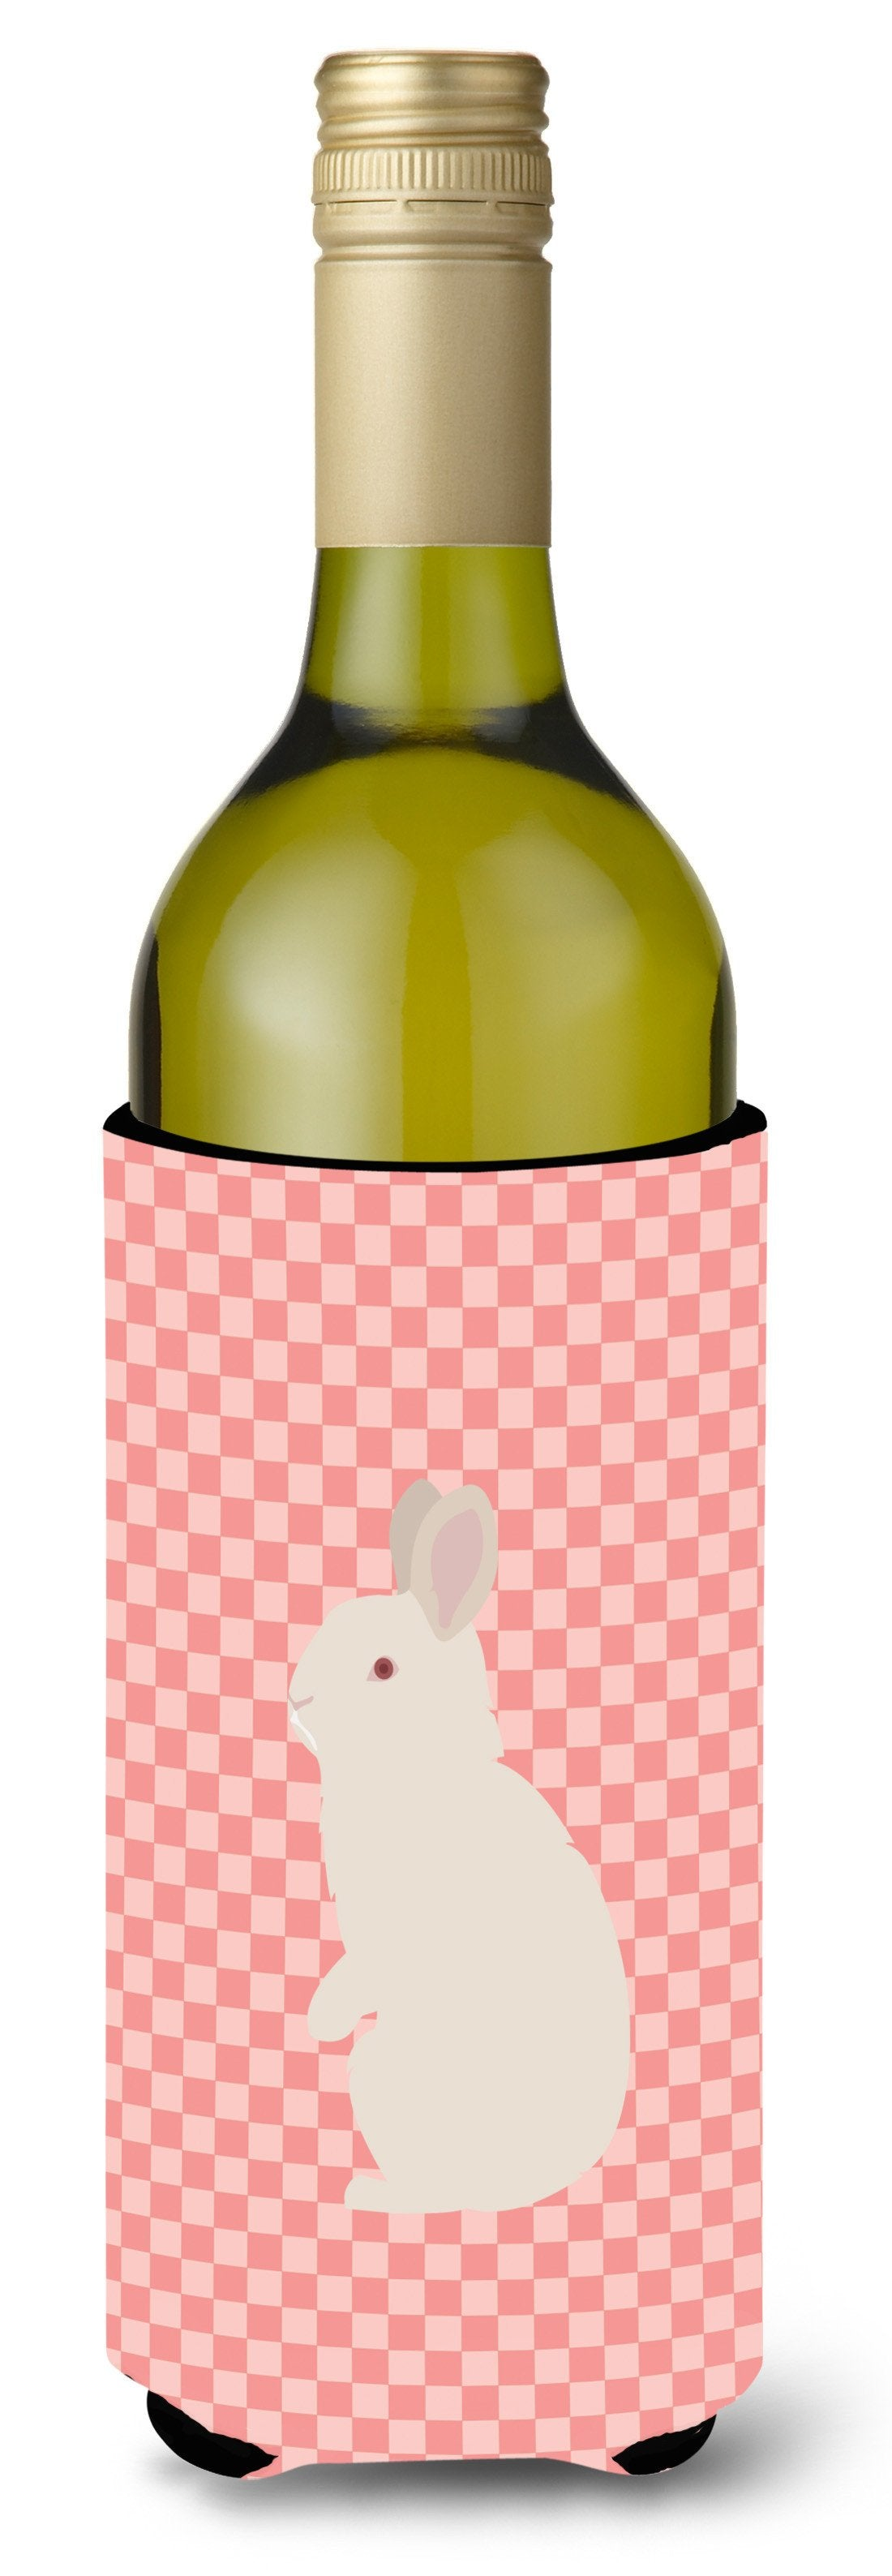 New Zealand White Rabbit Pink Check Wine Bottle Beverge Insulator Hugger BB7965LITERK by Caroline's Treasures